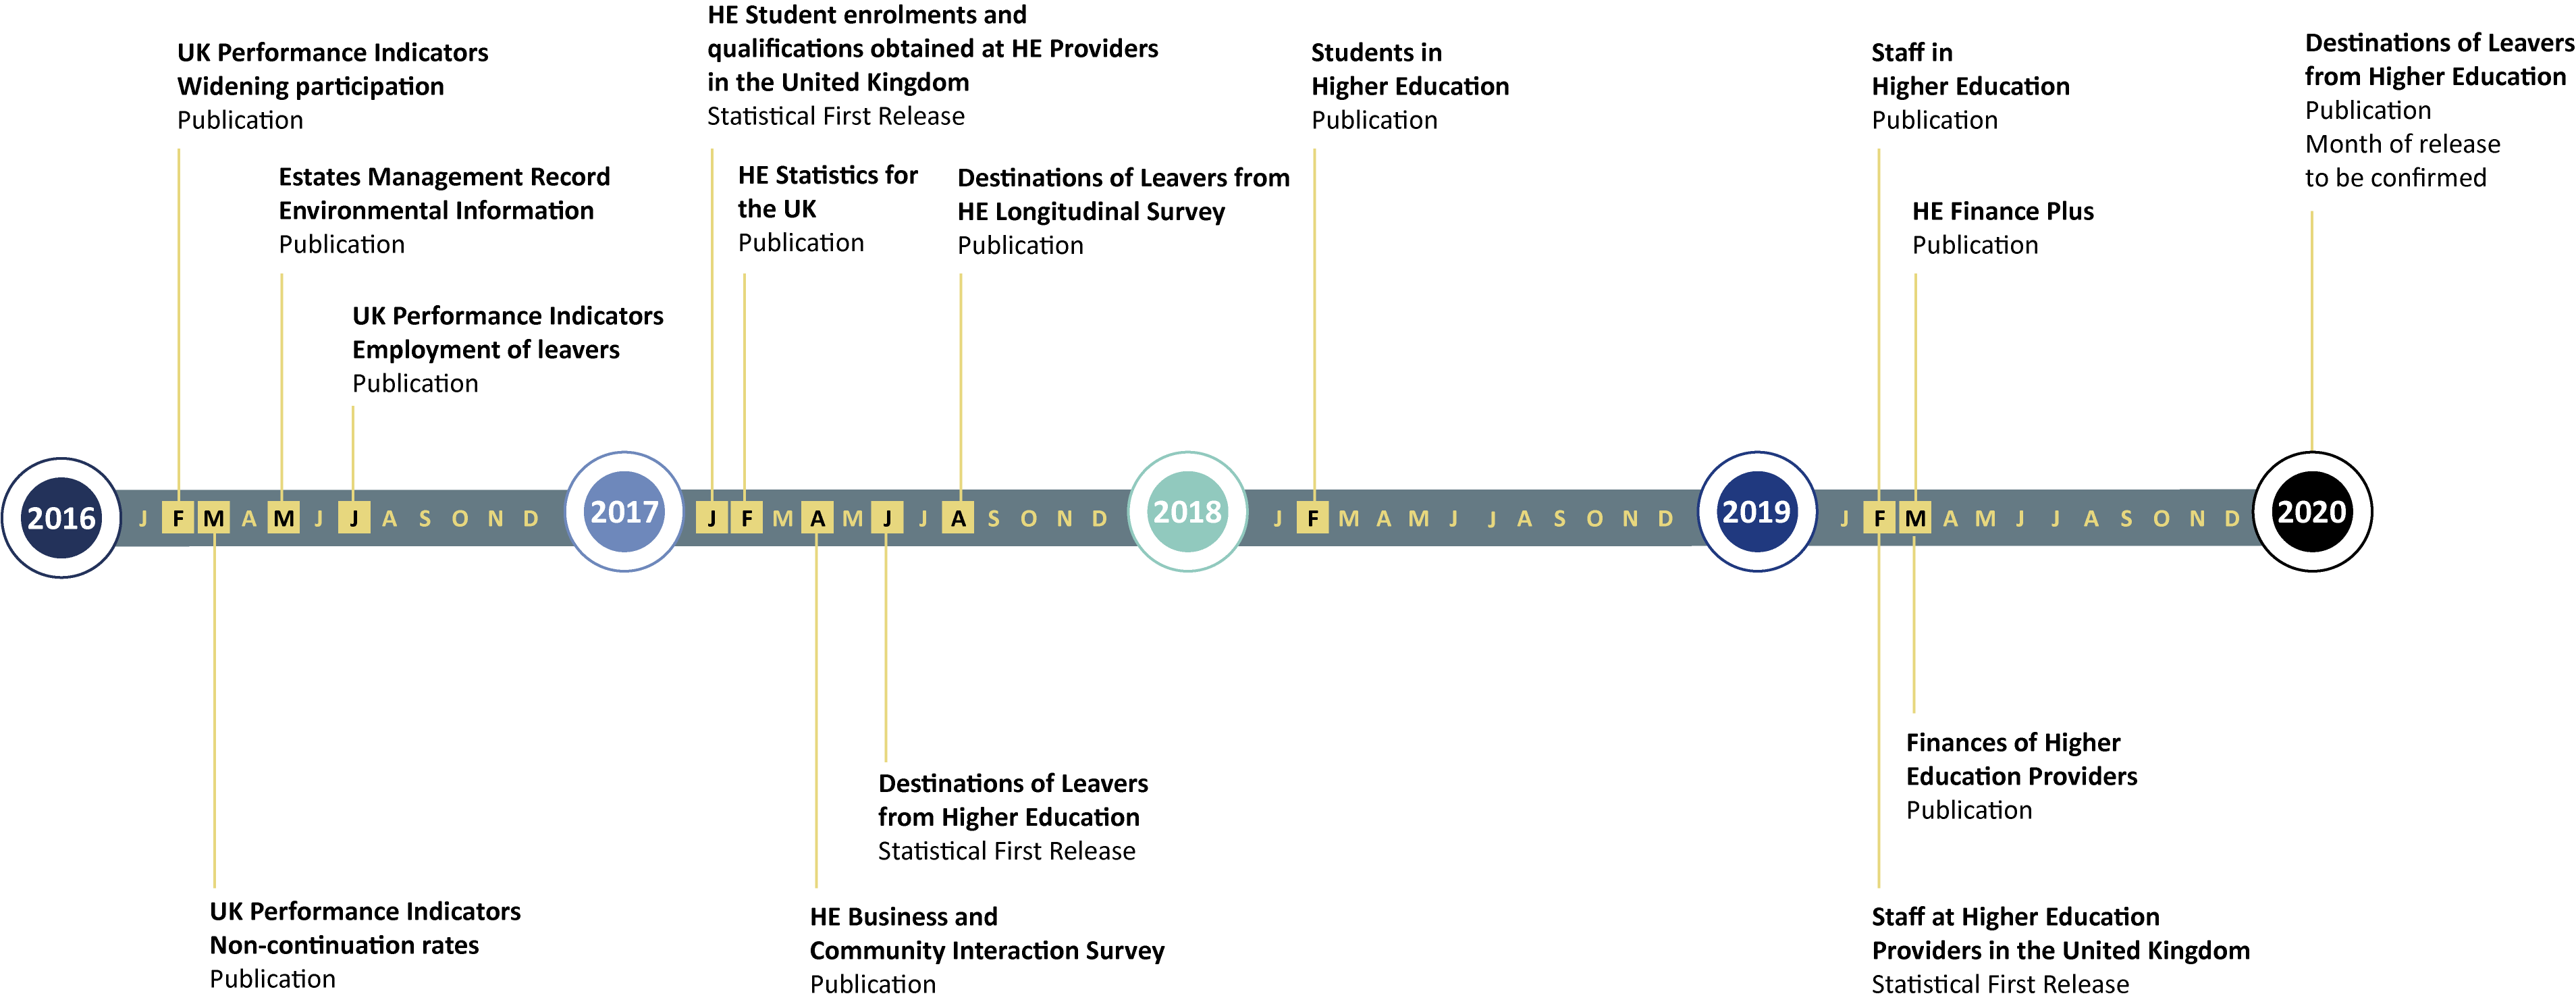 timeline of roll-out of HESA open data